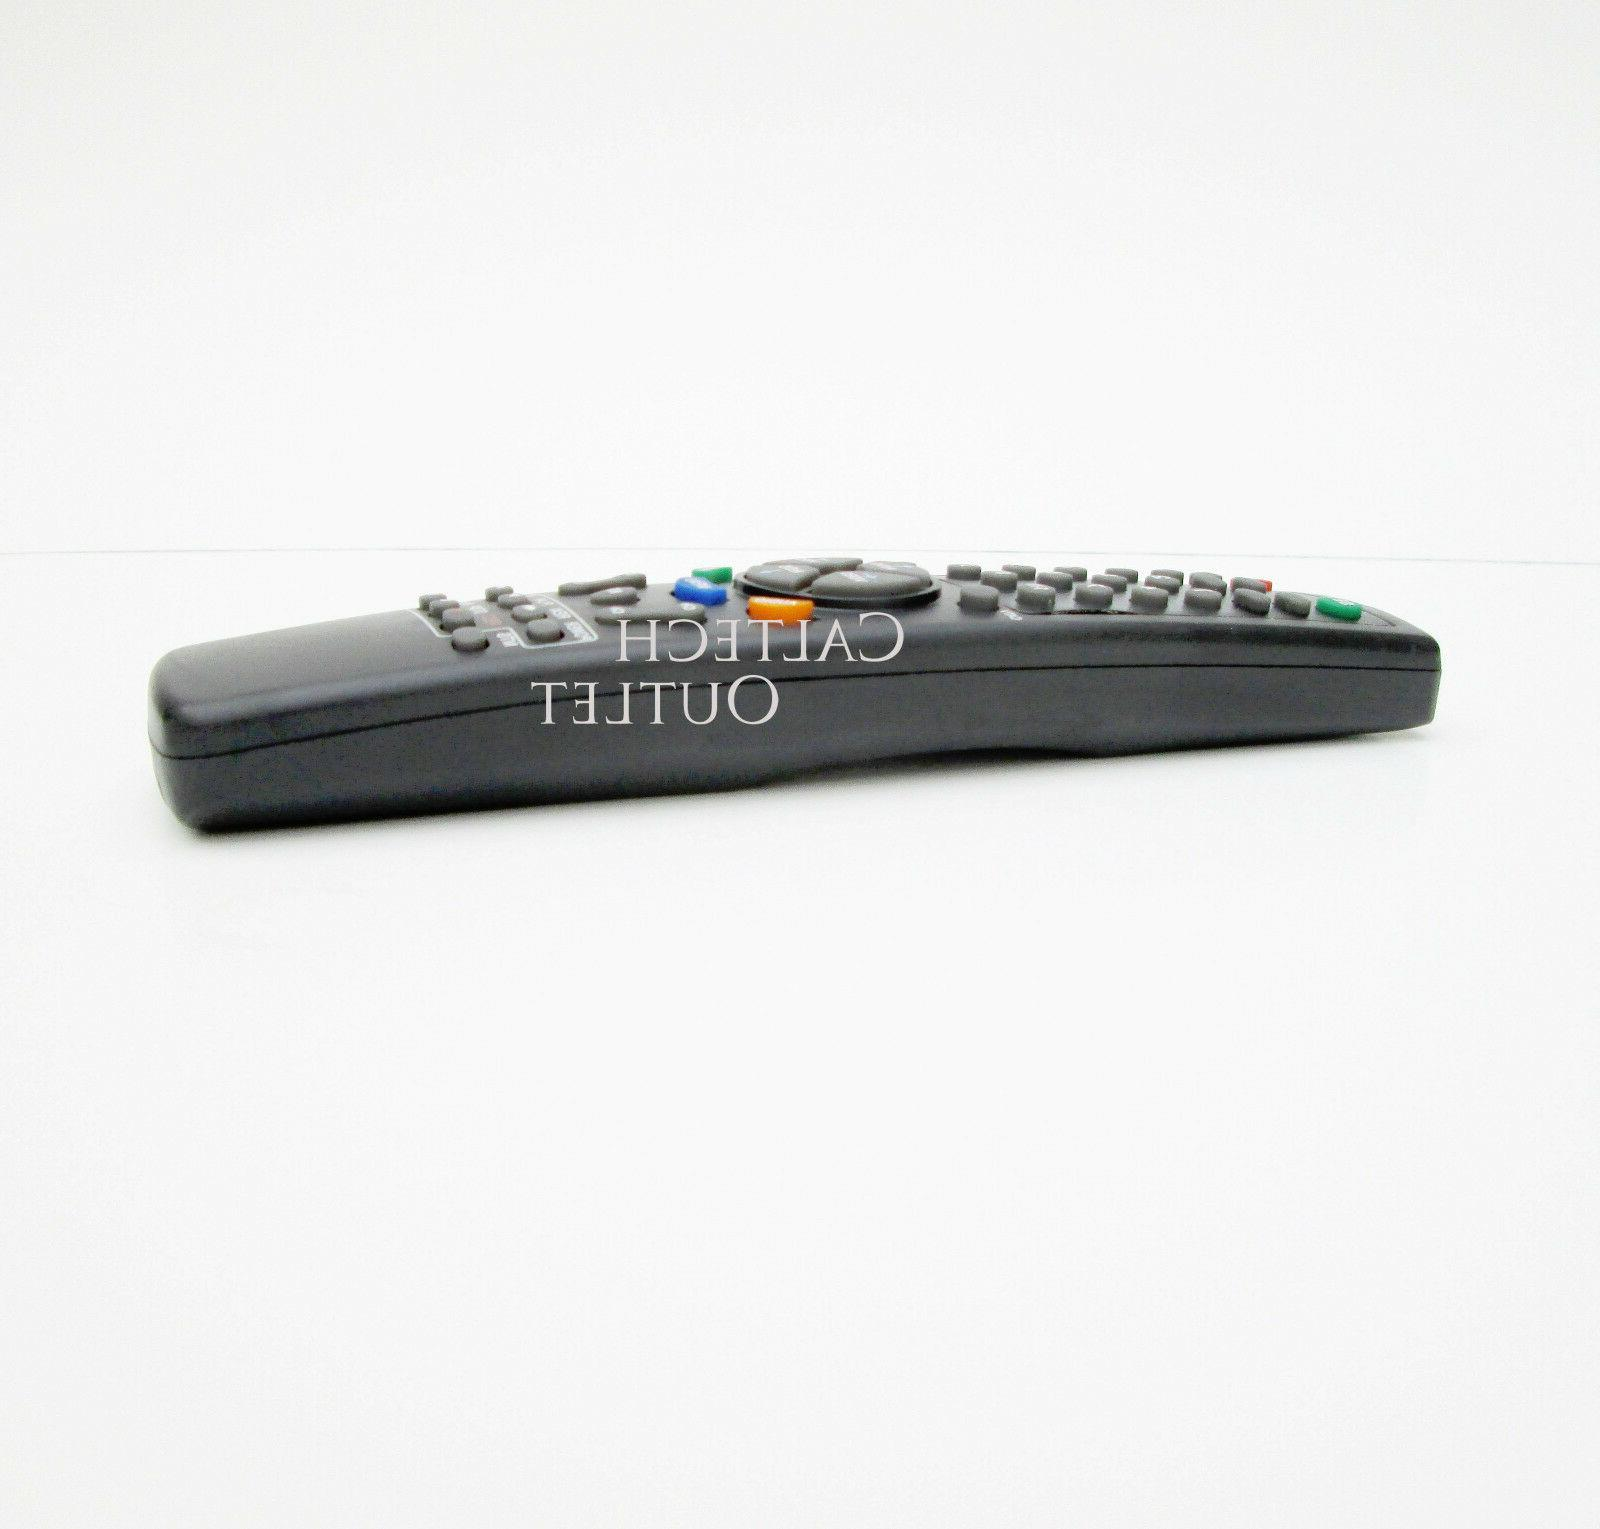 UNIVERSAL REPLACEMENT SMART LED LCD TV REMOTE CONTROL FOR PH